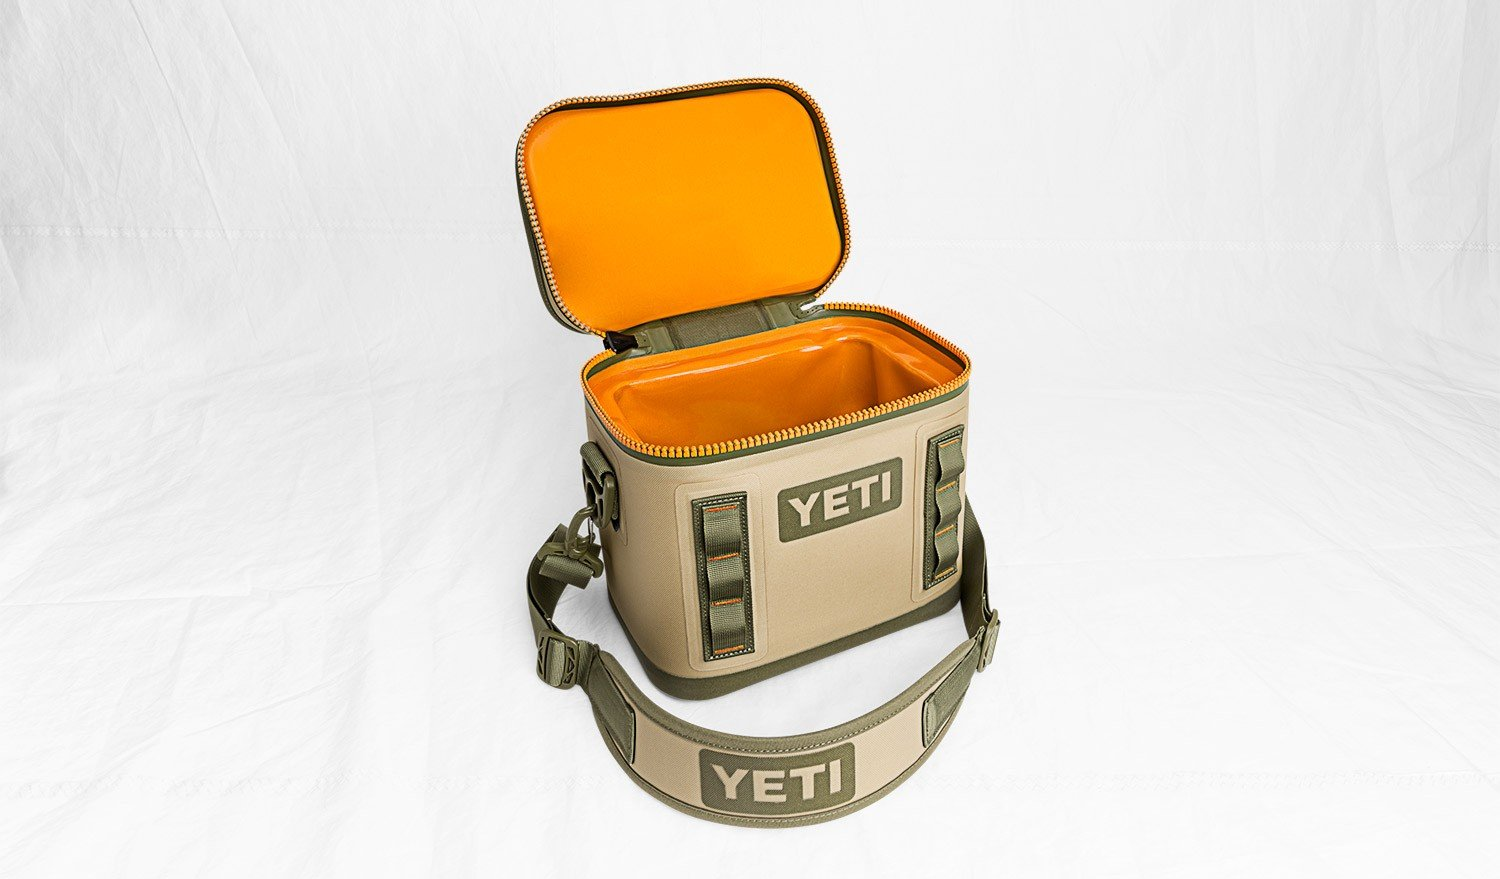 The best cooler on the market! Yeti cooler Yeti Hopper great for those with food allergies who need to pack their own meals.